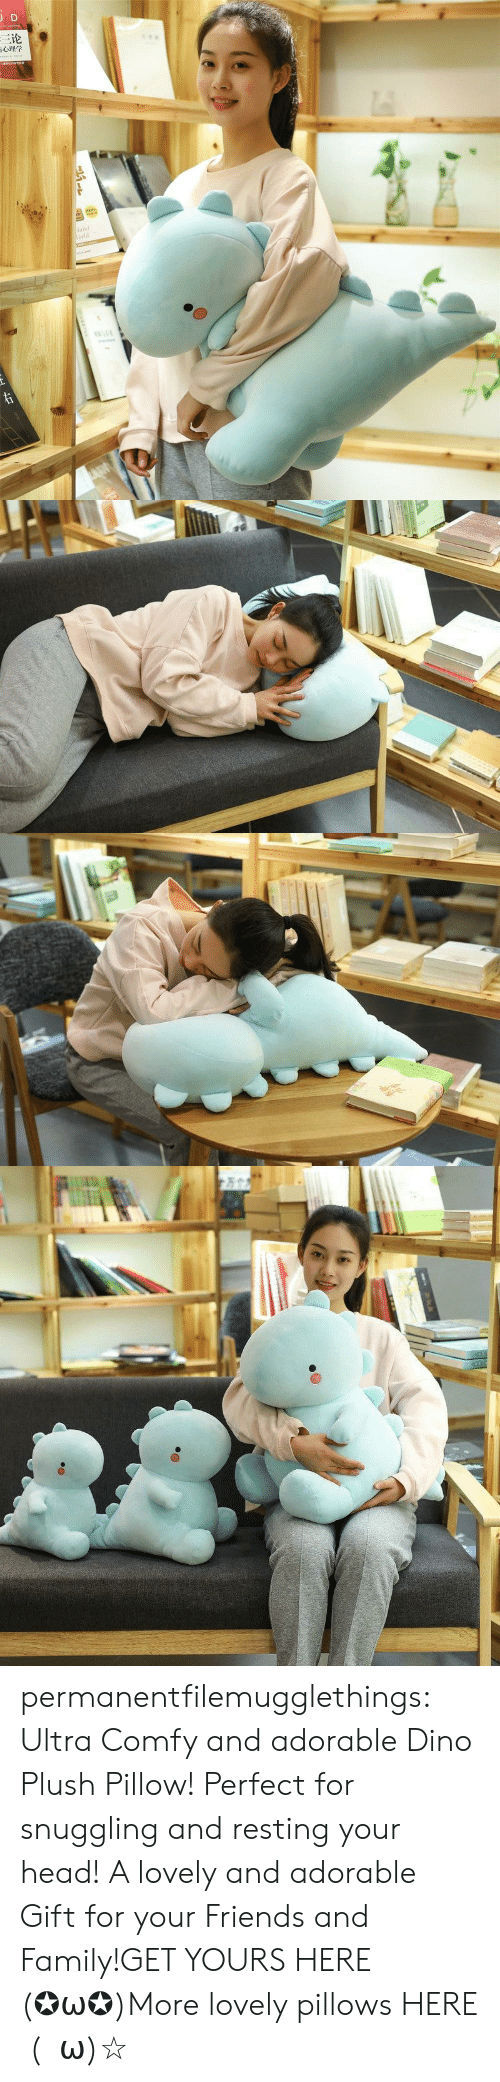 Family, Friends, and Head: JD  三论  laint  orld  TDNAR  ww.e permanentfilemugglethings:  Ultra Comfy and adorable Dino Plush Pillow! Perfect for snuggling and resting your head! A lovely and adorable Gift for your Friends and Family!GET YOURS HERE (✪ω✪)More lovely pillows HERE  (・ω)☆